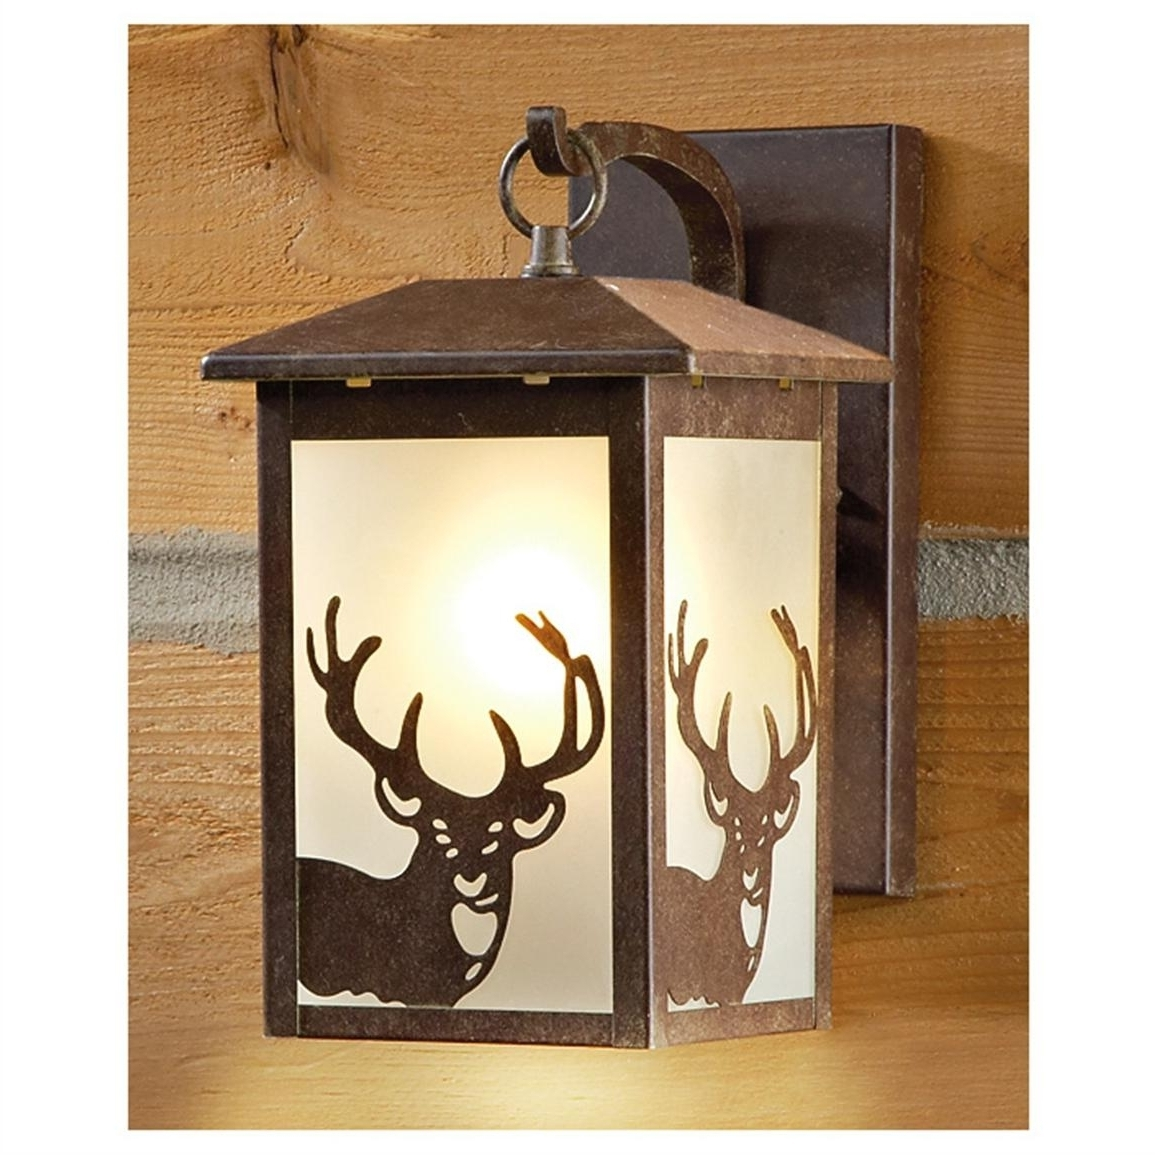 Rustic Outdoor Lighting Wall Sconces • Wall Sconces Pertaining To Recent Rustic Outdoor Wall Lighting (View 11 of 20)